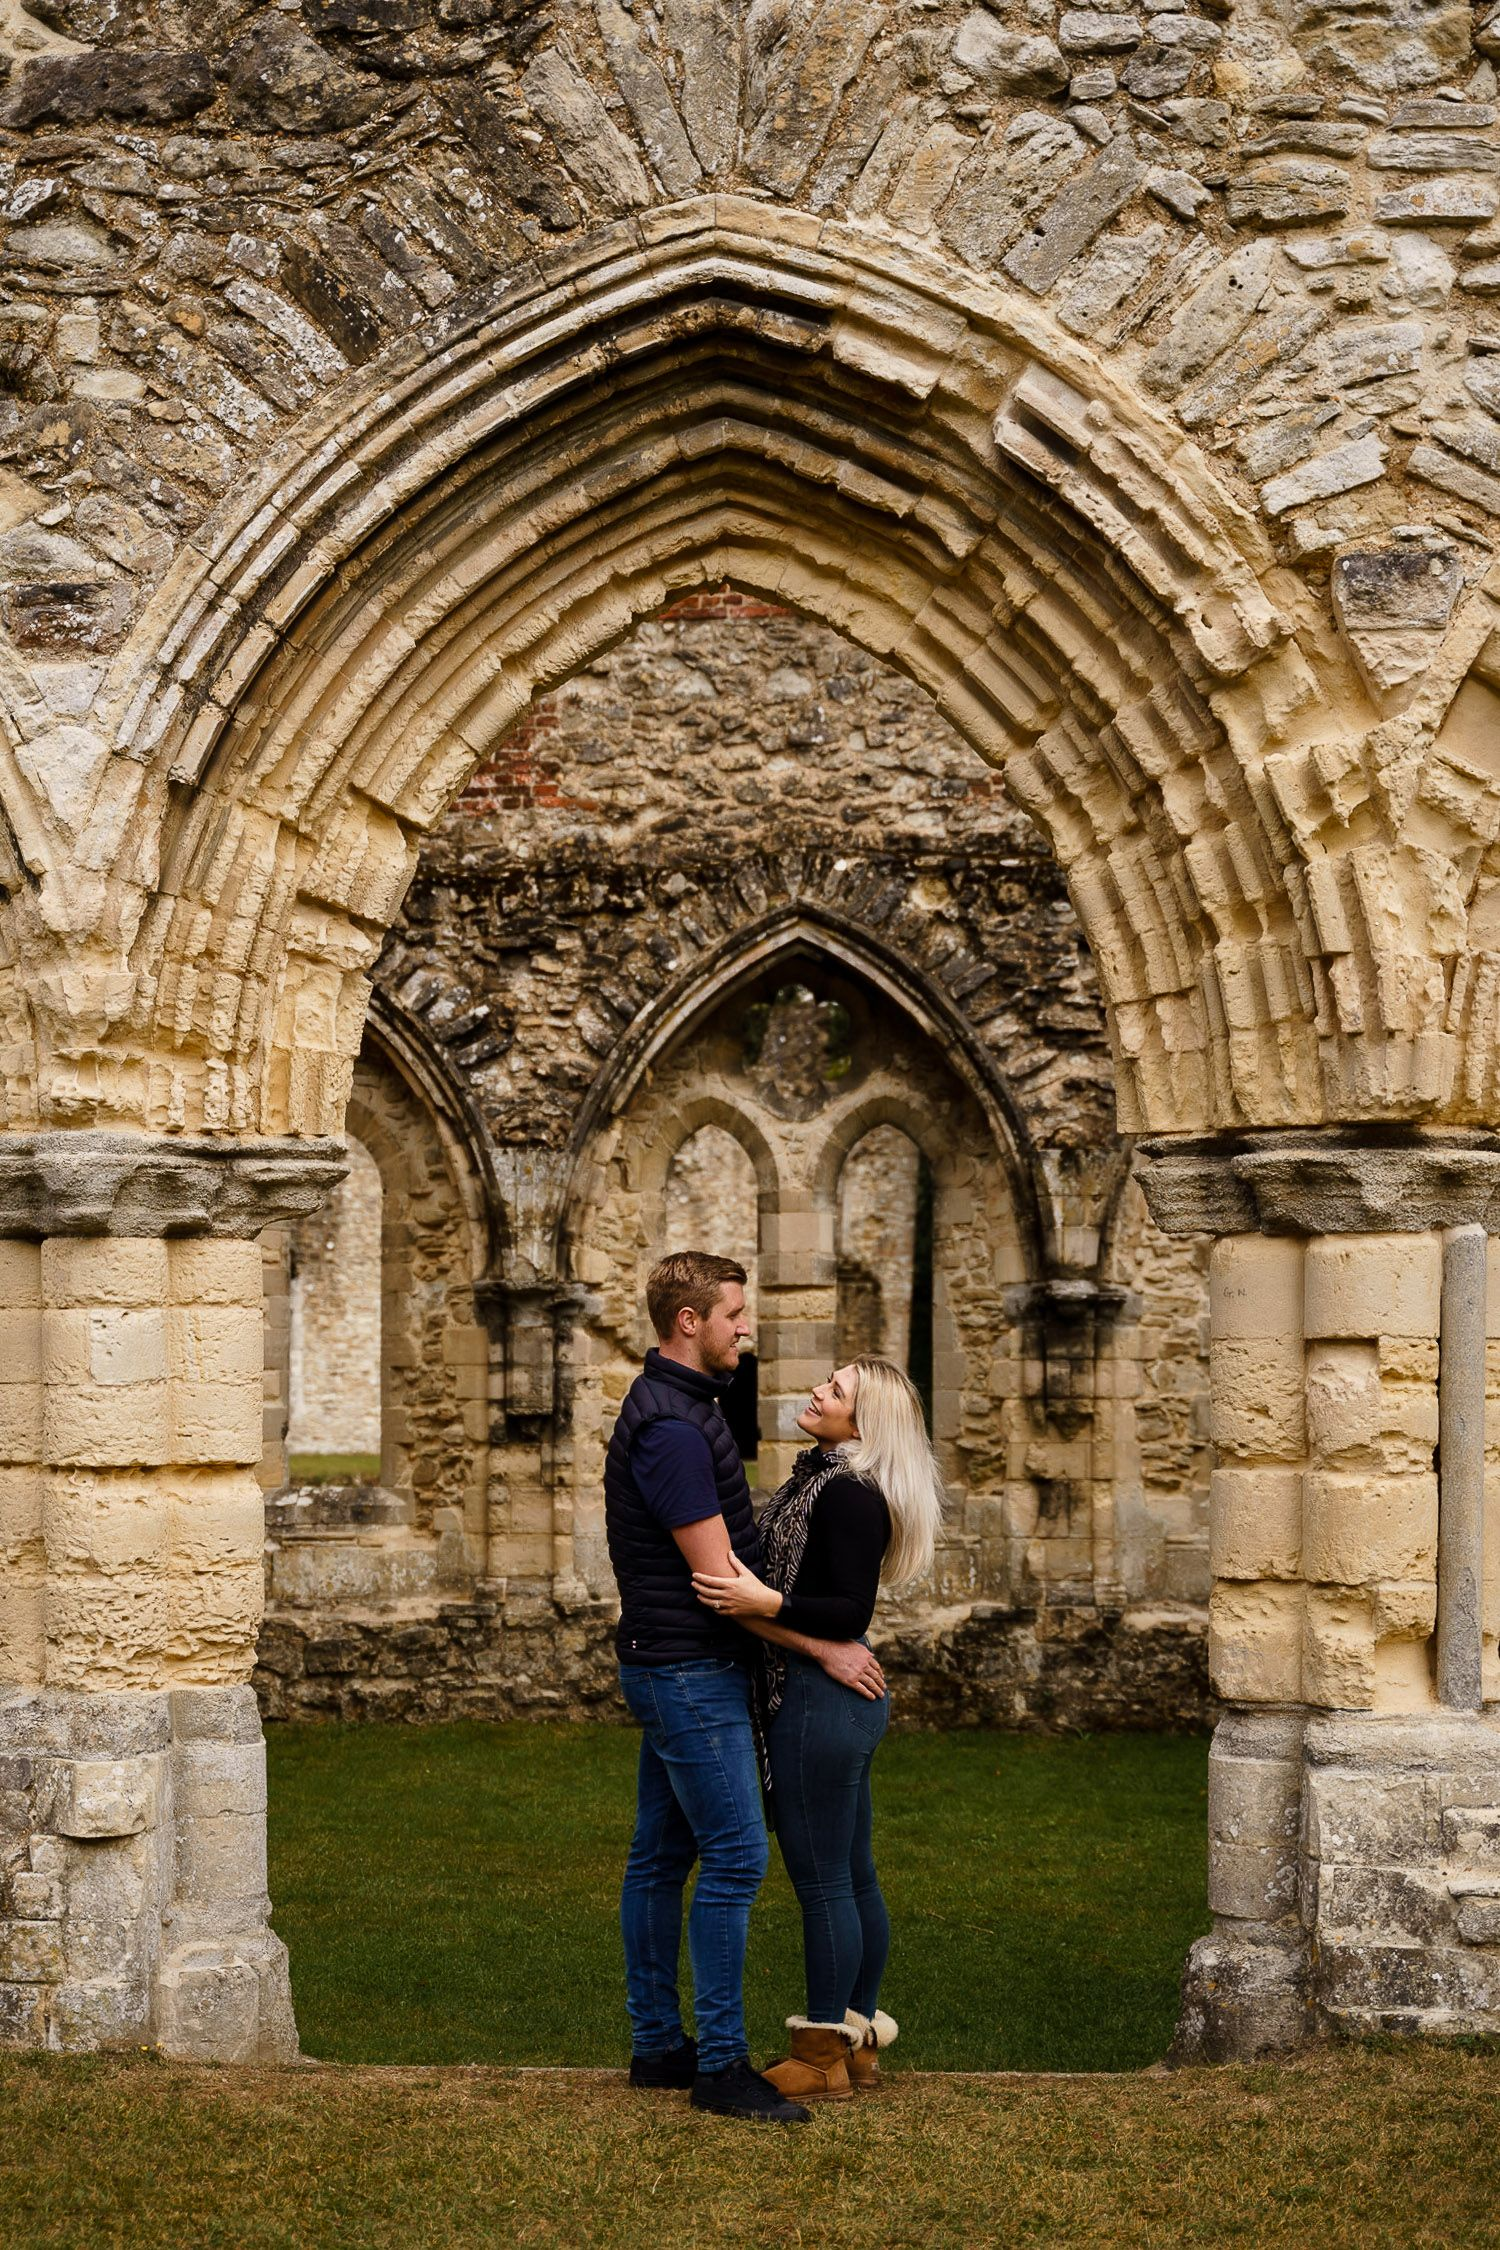 Portrait of couple laughing together framed by an arch in Netley Abbey. Katherine and her Camera engagement photoshoot.